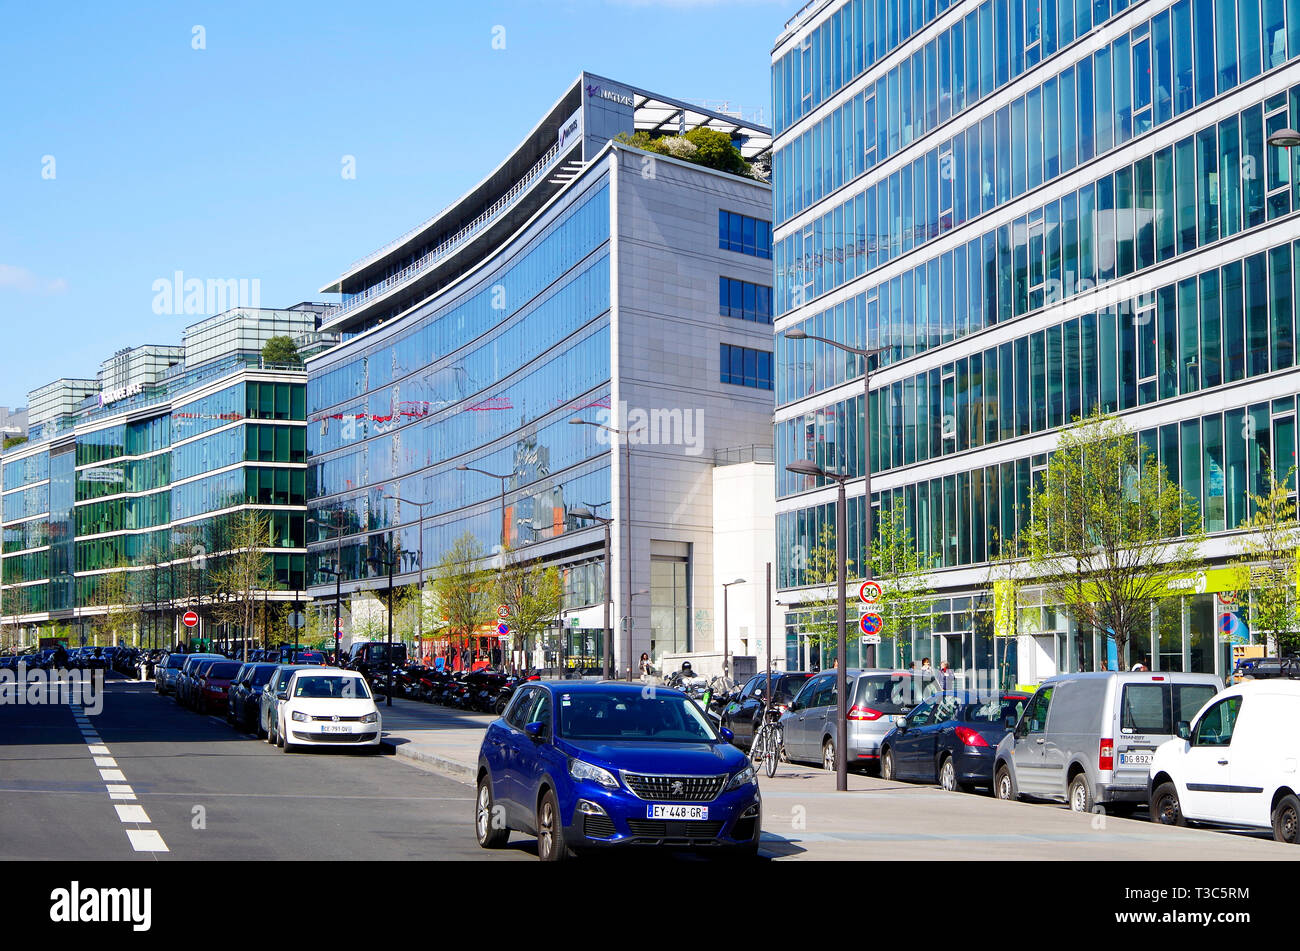 Office buildings on Avenue de France, the principle artery of the ZAC Rive Gauche, a €9 billion redevelopment of former railway lands beside the Seine - Stock Image